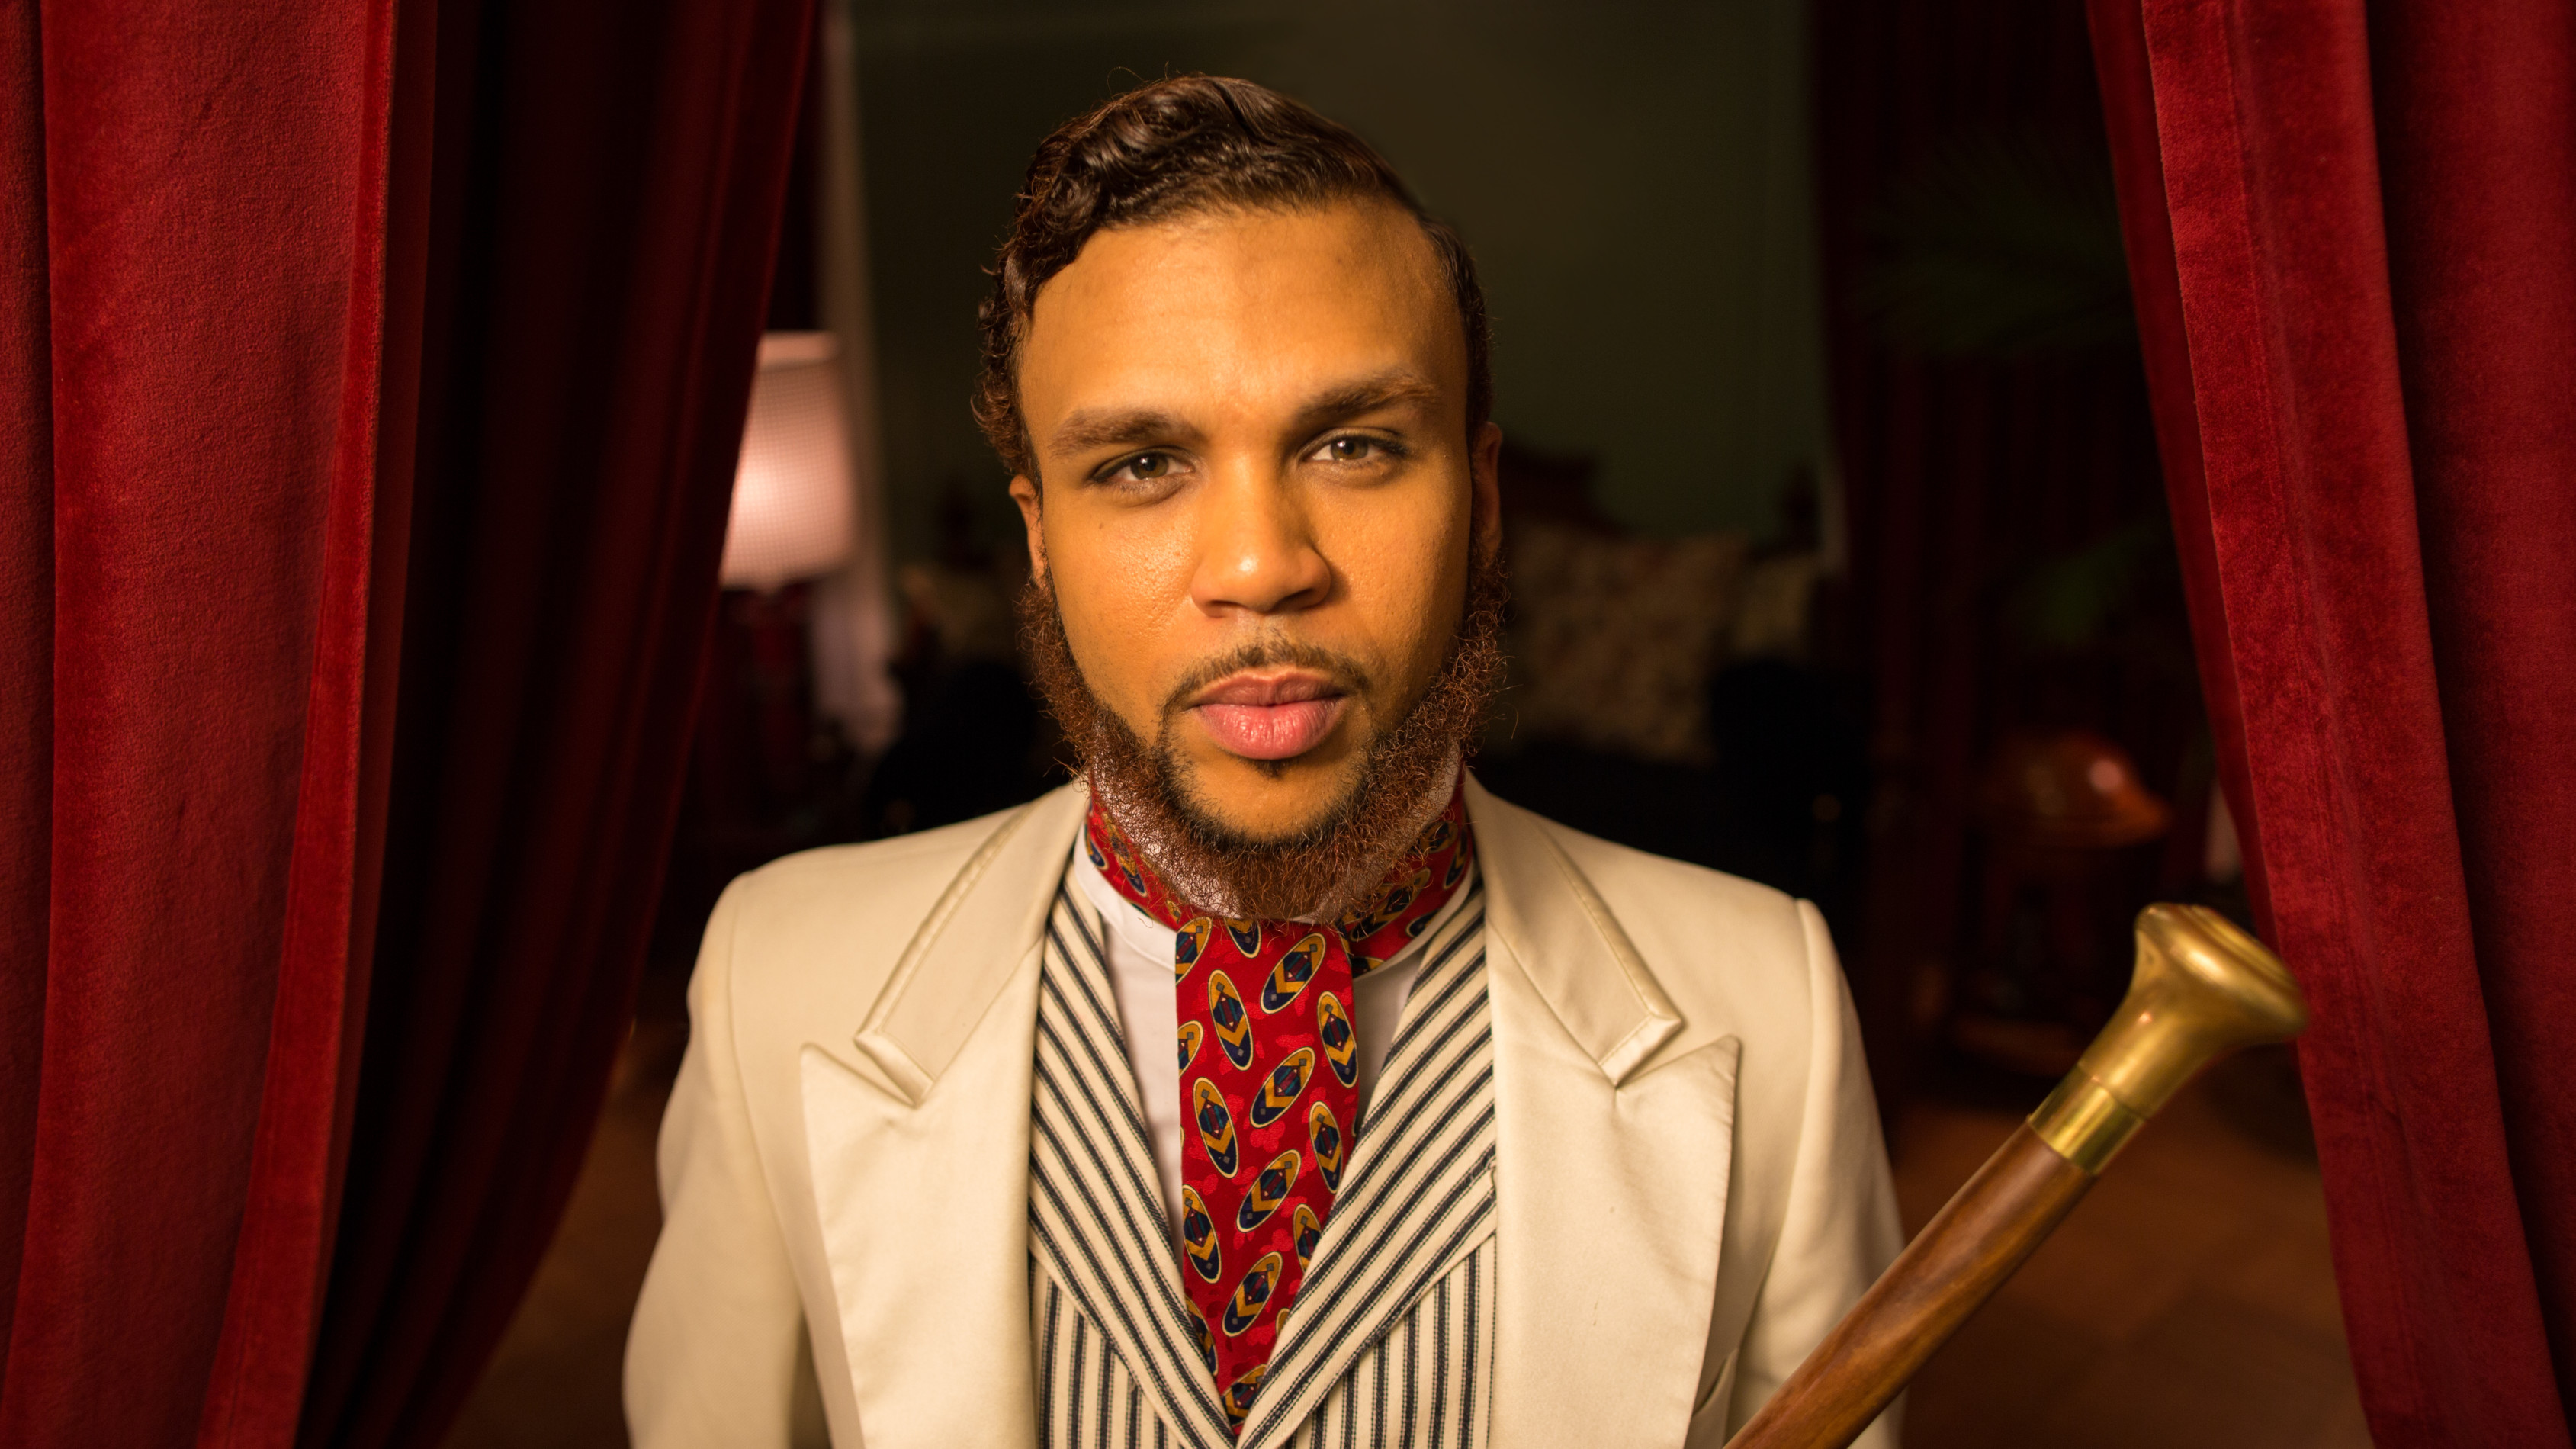 Get To Know Jidenna The Next Big Thing In A Fly Ass Suit